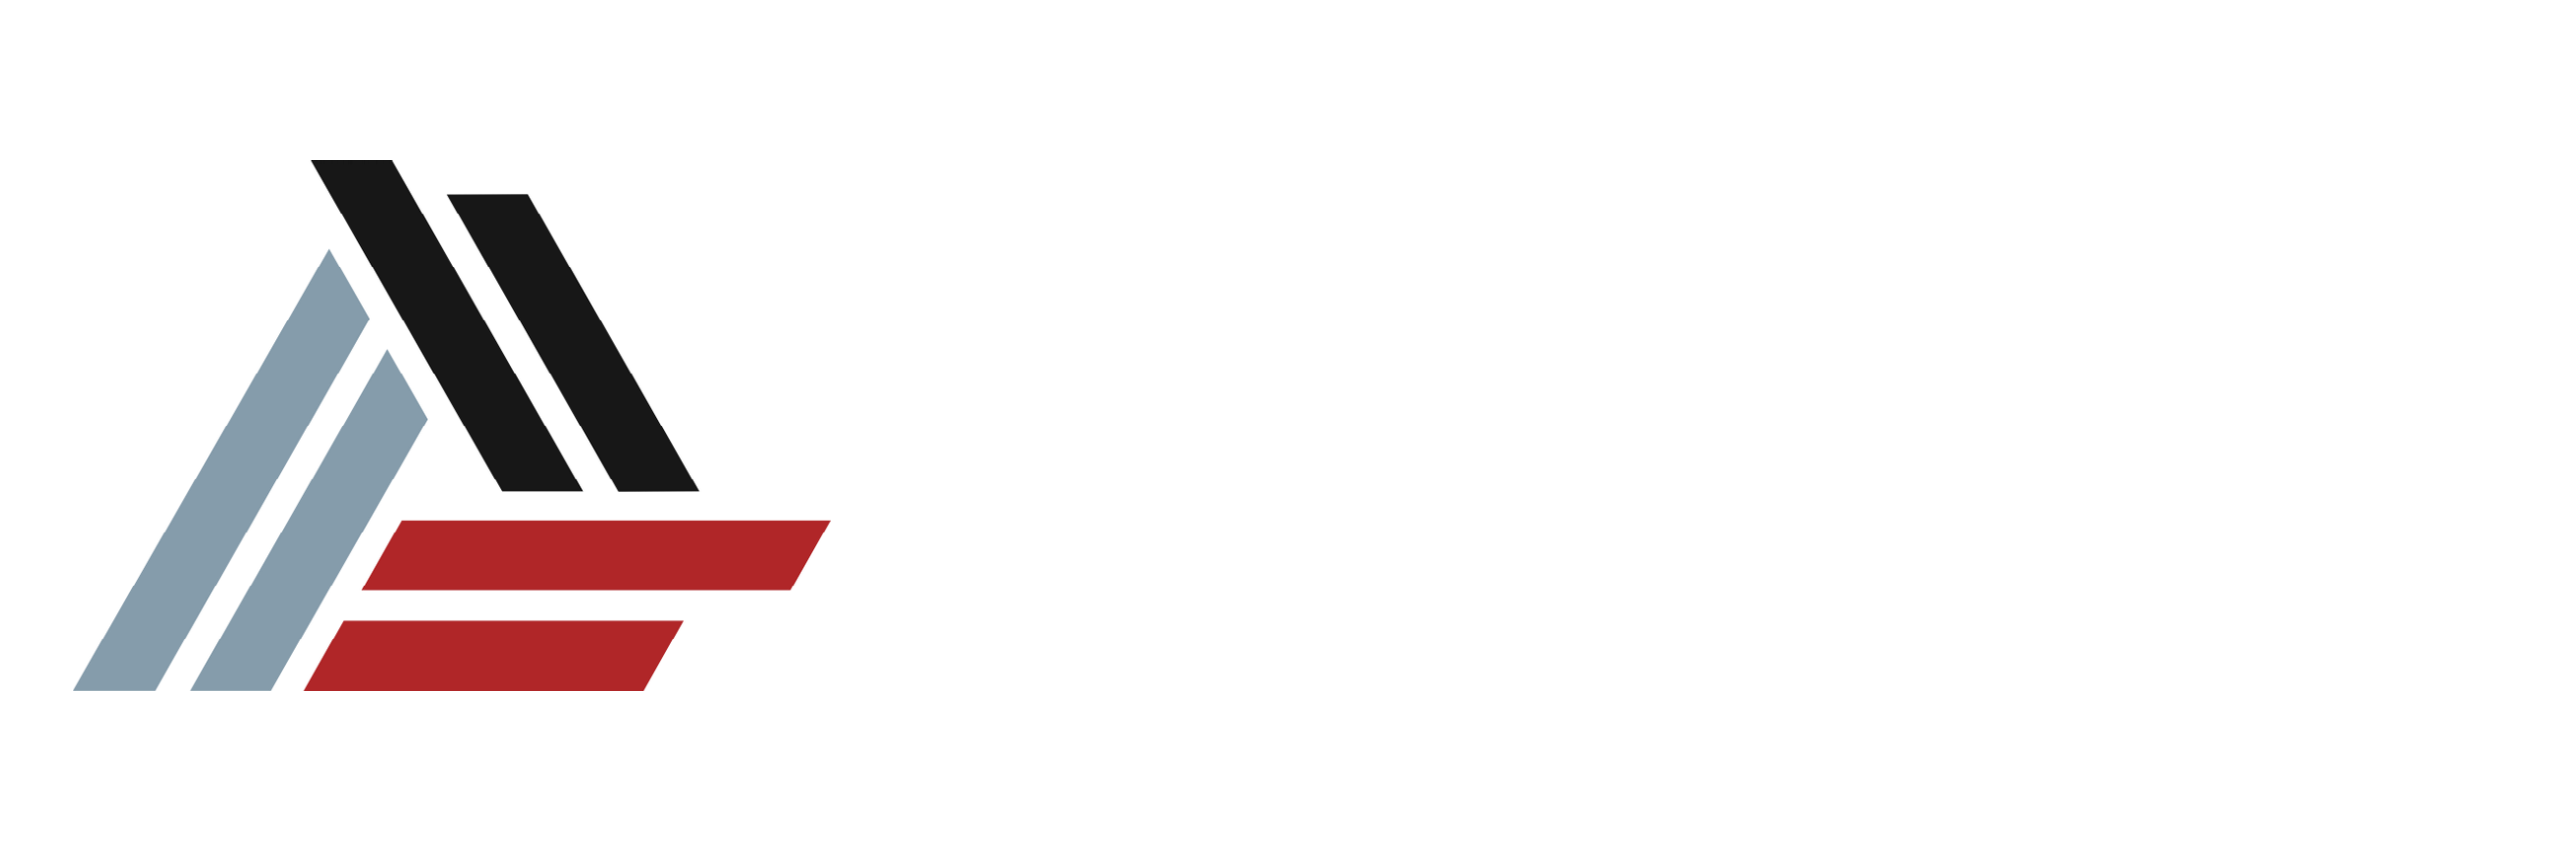 Ready Hire Staffing